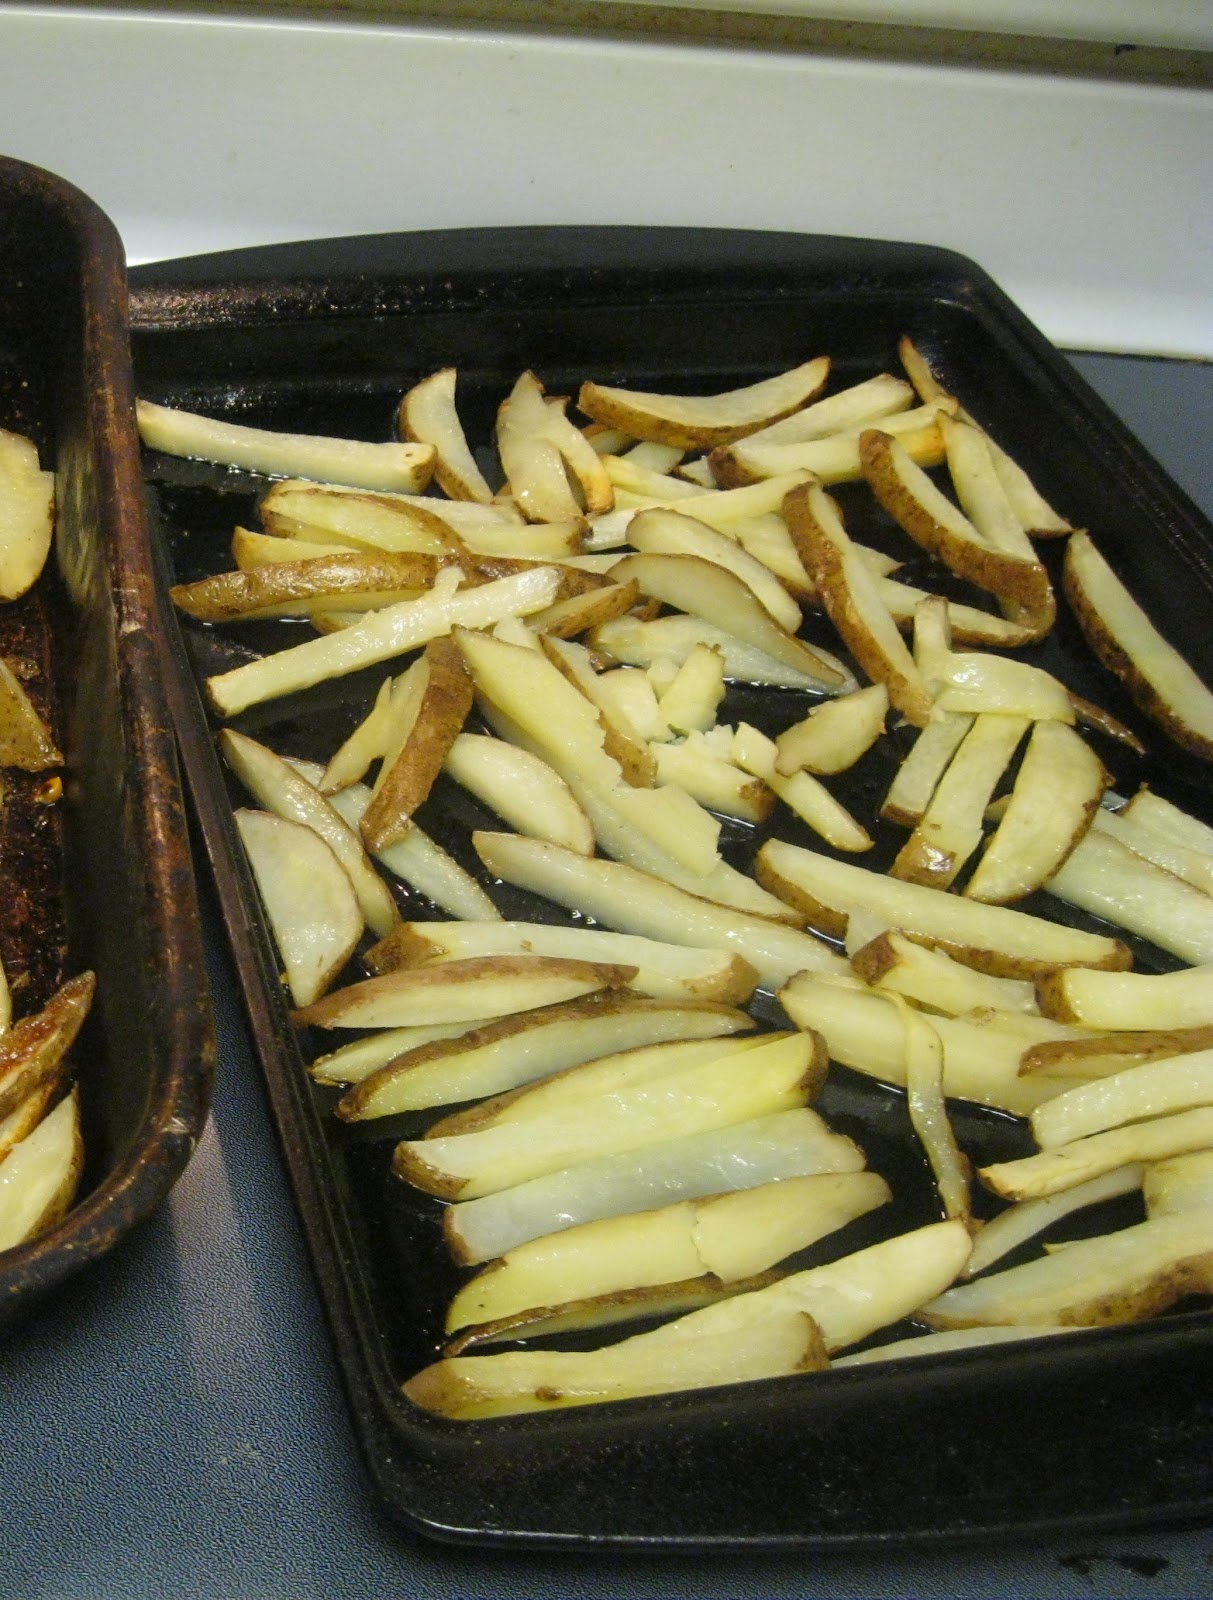 Patio Frozen Dinners TIP GARDEN Freezer Meals Frozen French Fries .